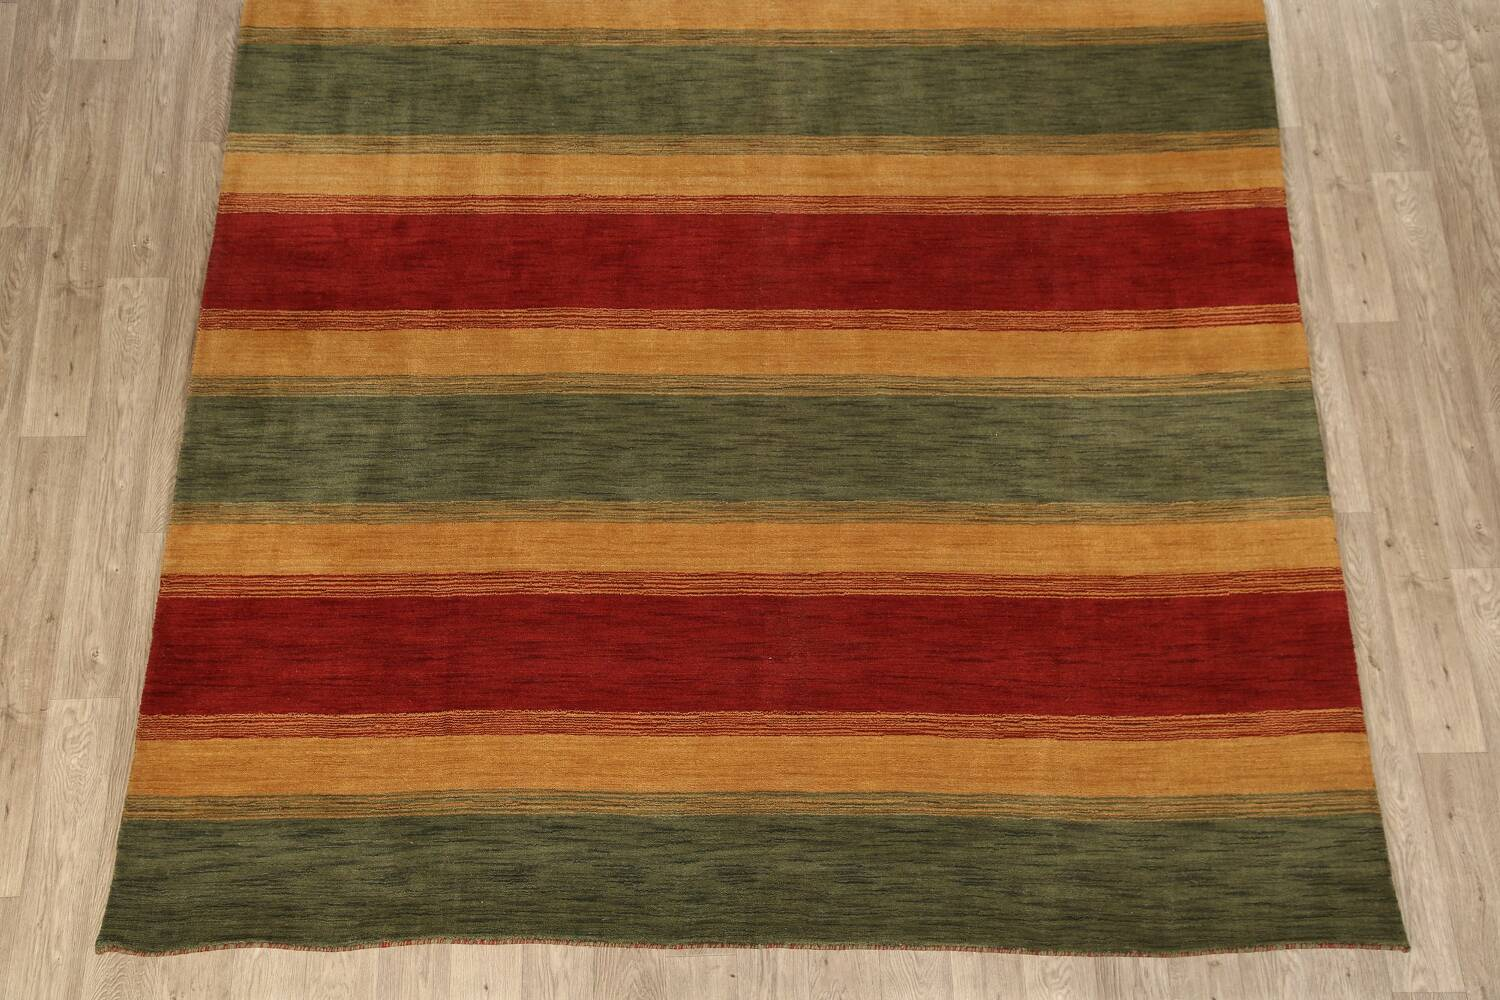 All-Over Striped Gabbeh Oriental Area Rug 9x12 image 5